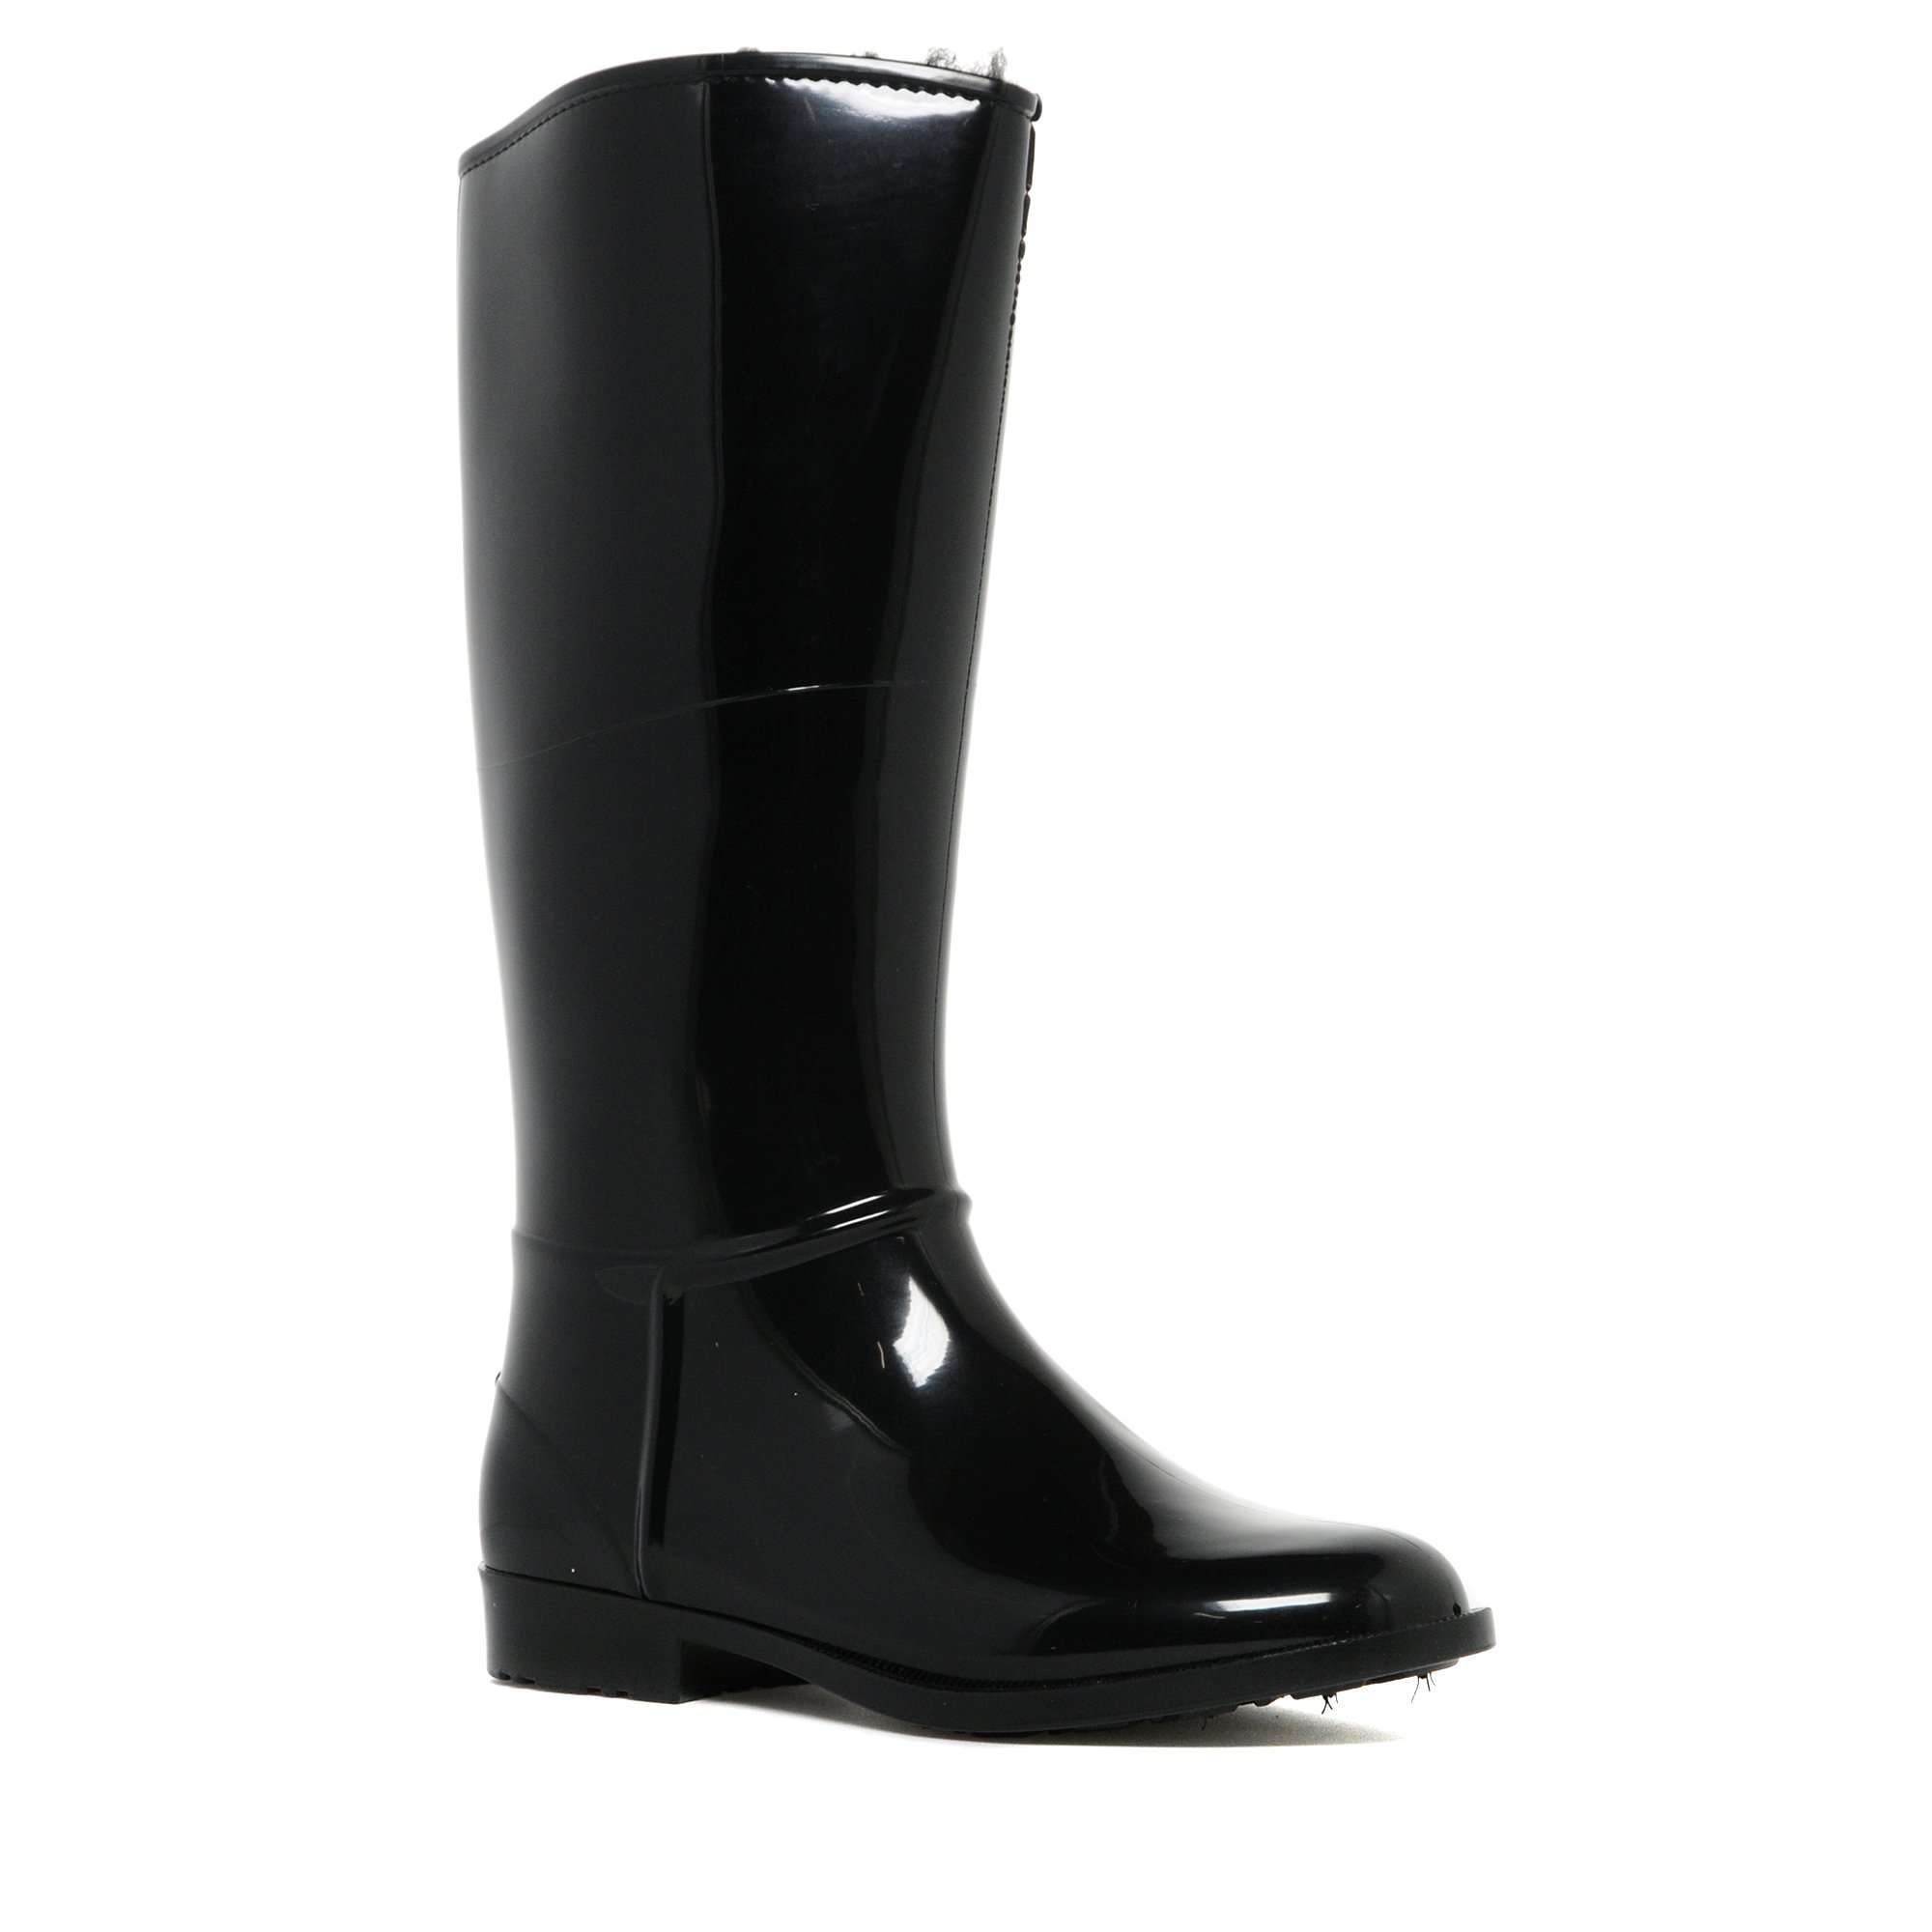 O.B. Women's Warm Wellies